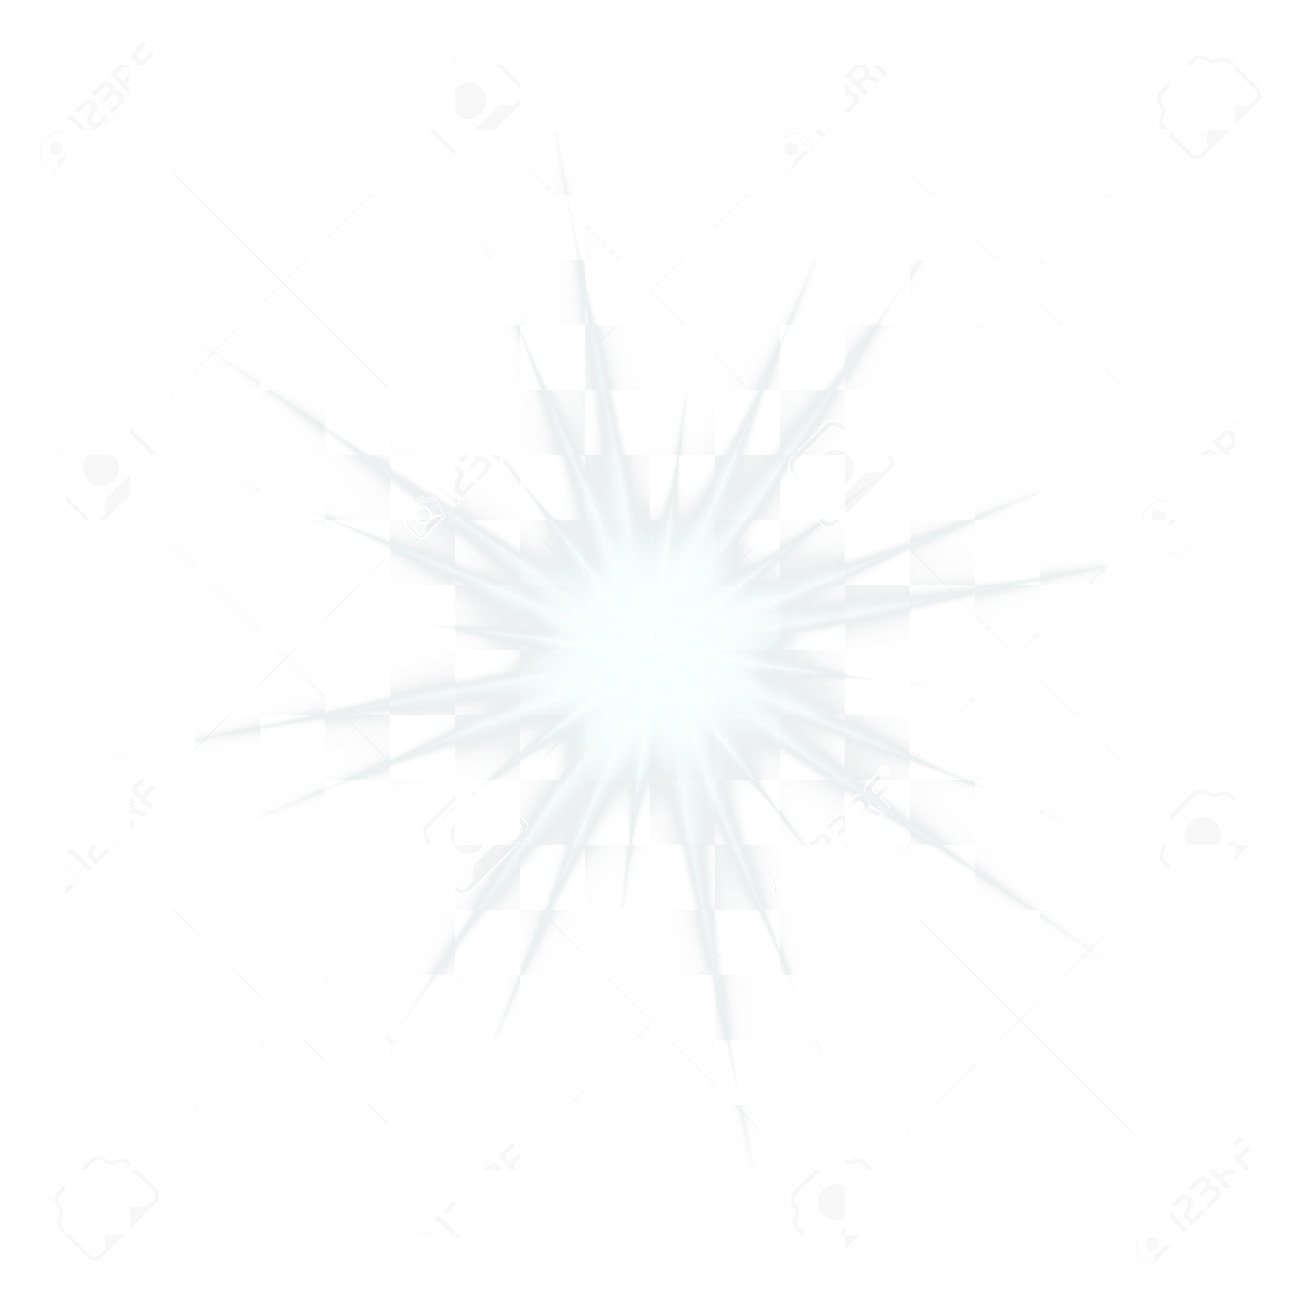 Light Lens flare White Photography.